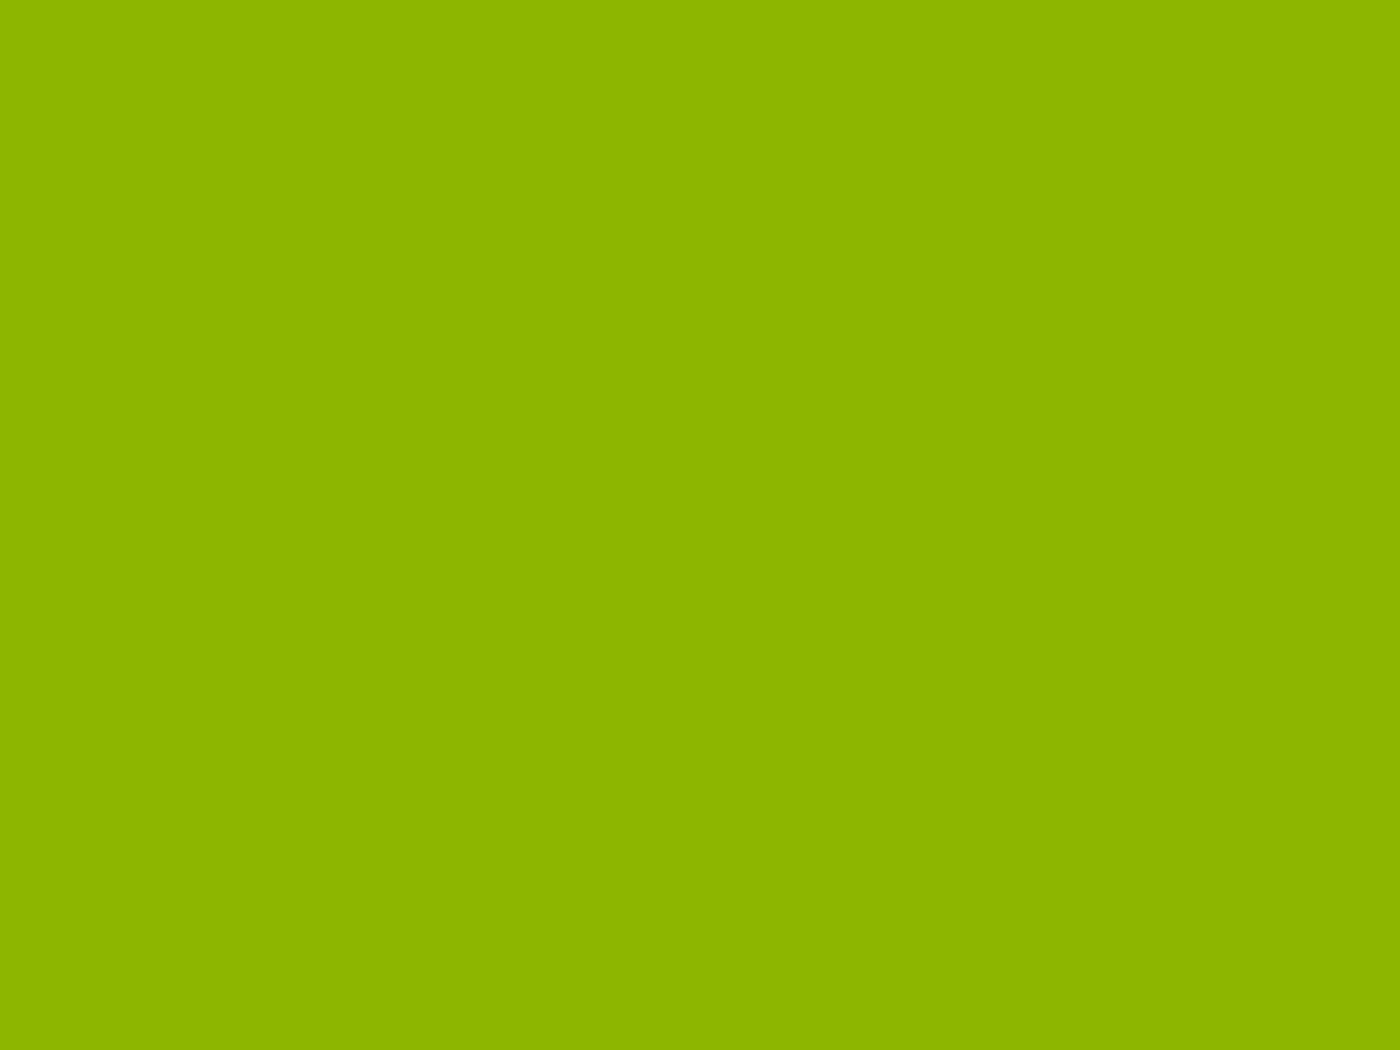 1400x1050 Apple Green Solid Color Background